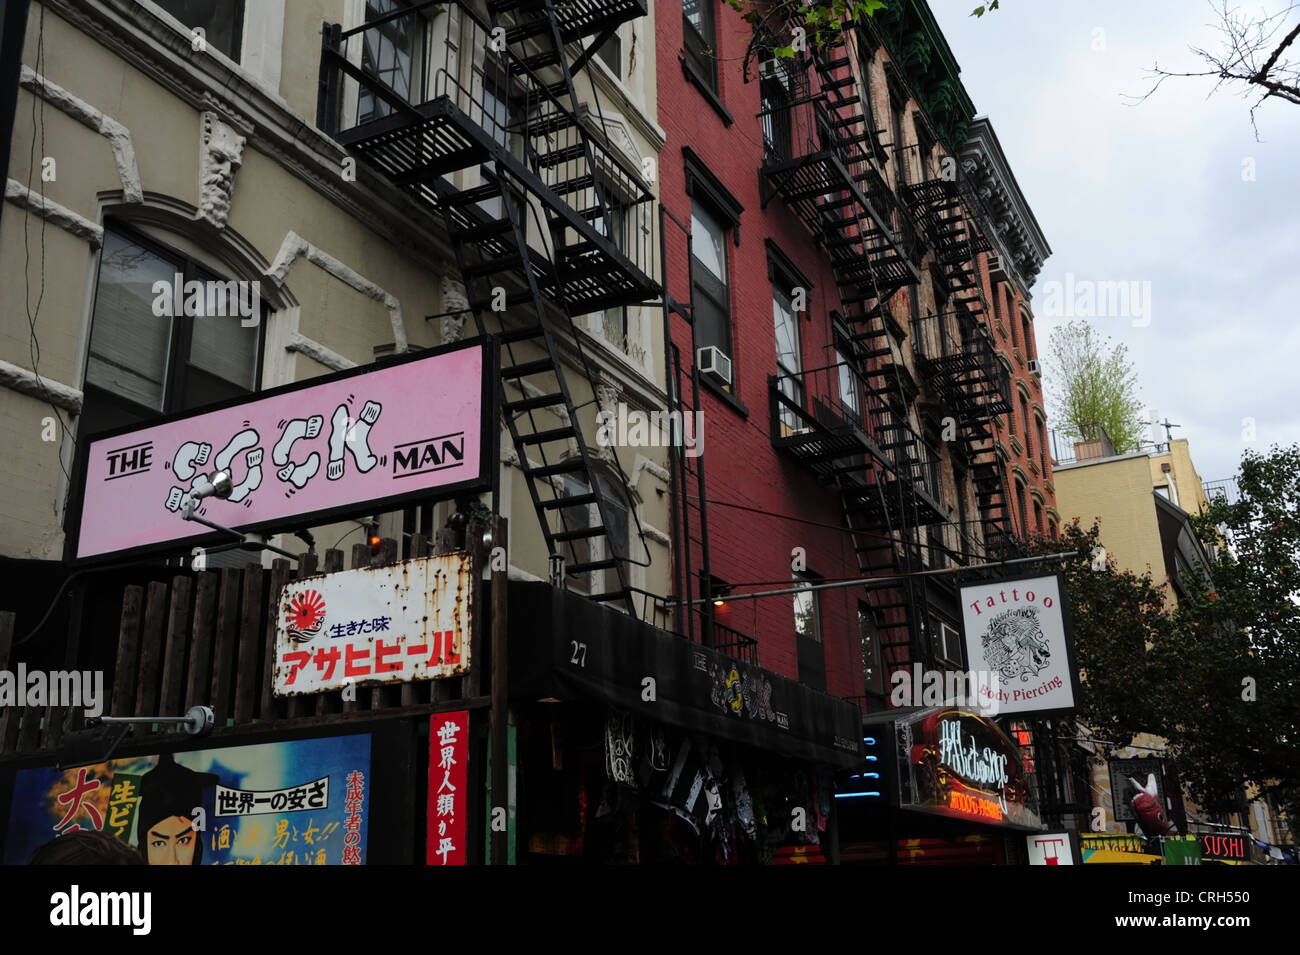 Ornate tenements with \'Sock Man\' clothes shop, \'Addiction NYC ...